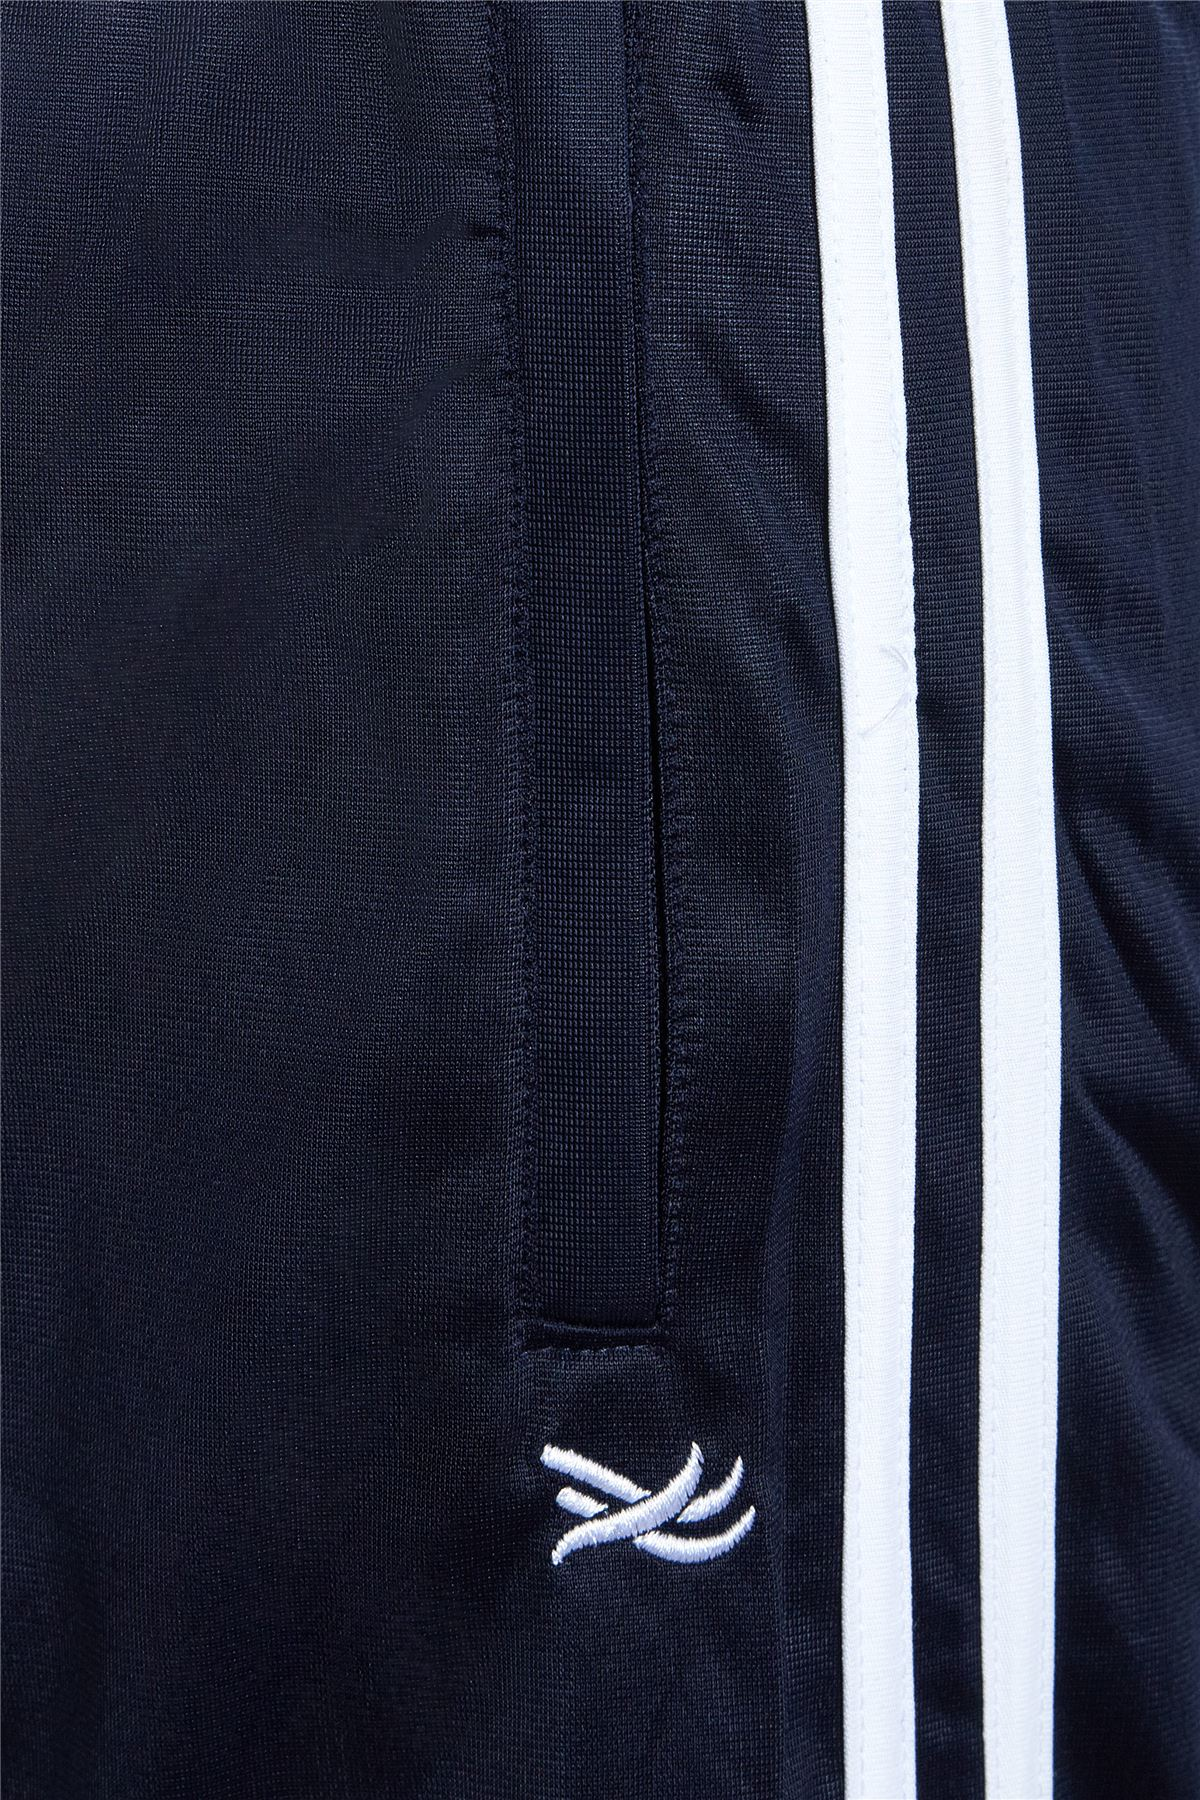 Mens-Tracksuit-Joggers-Jogging-Striped-Gym-Sports-Silky-Bottoms-Trousers-Pants thumbnail 14